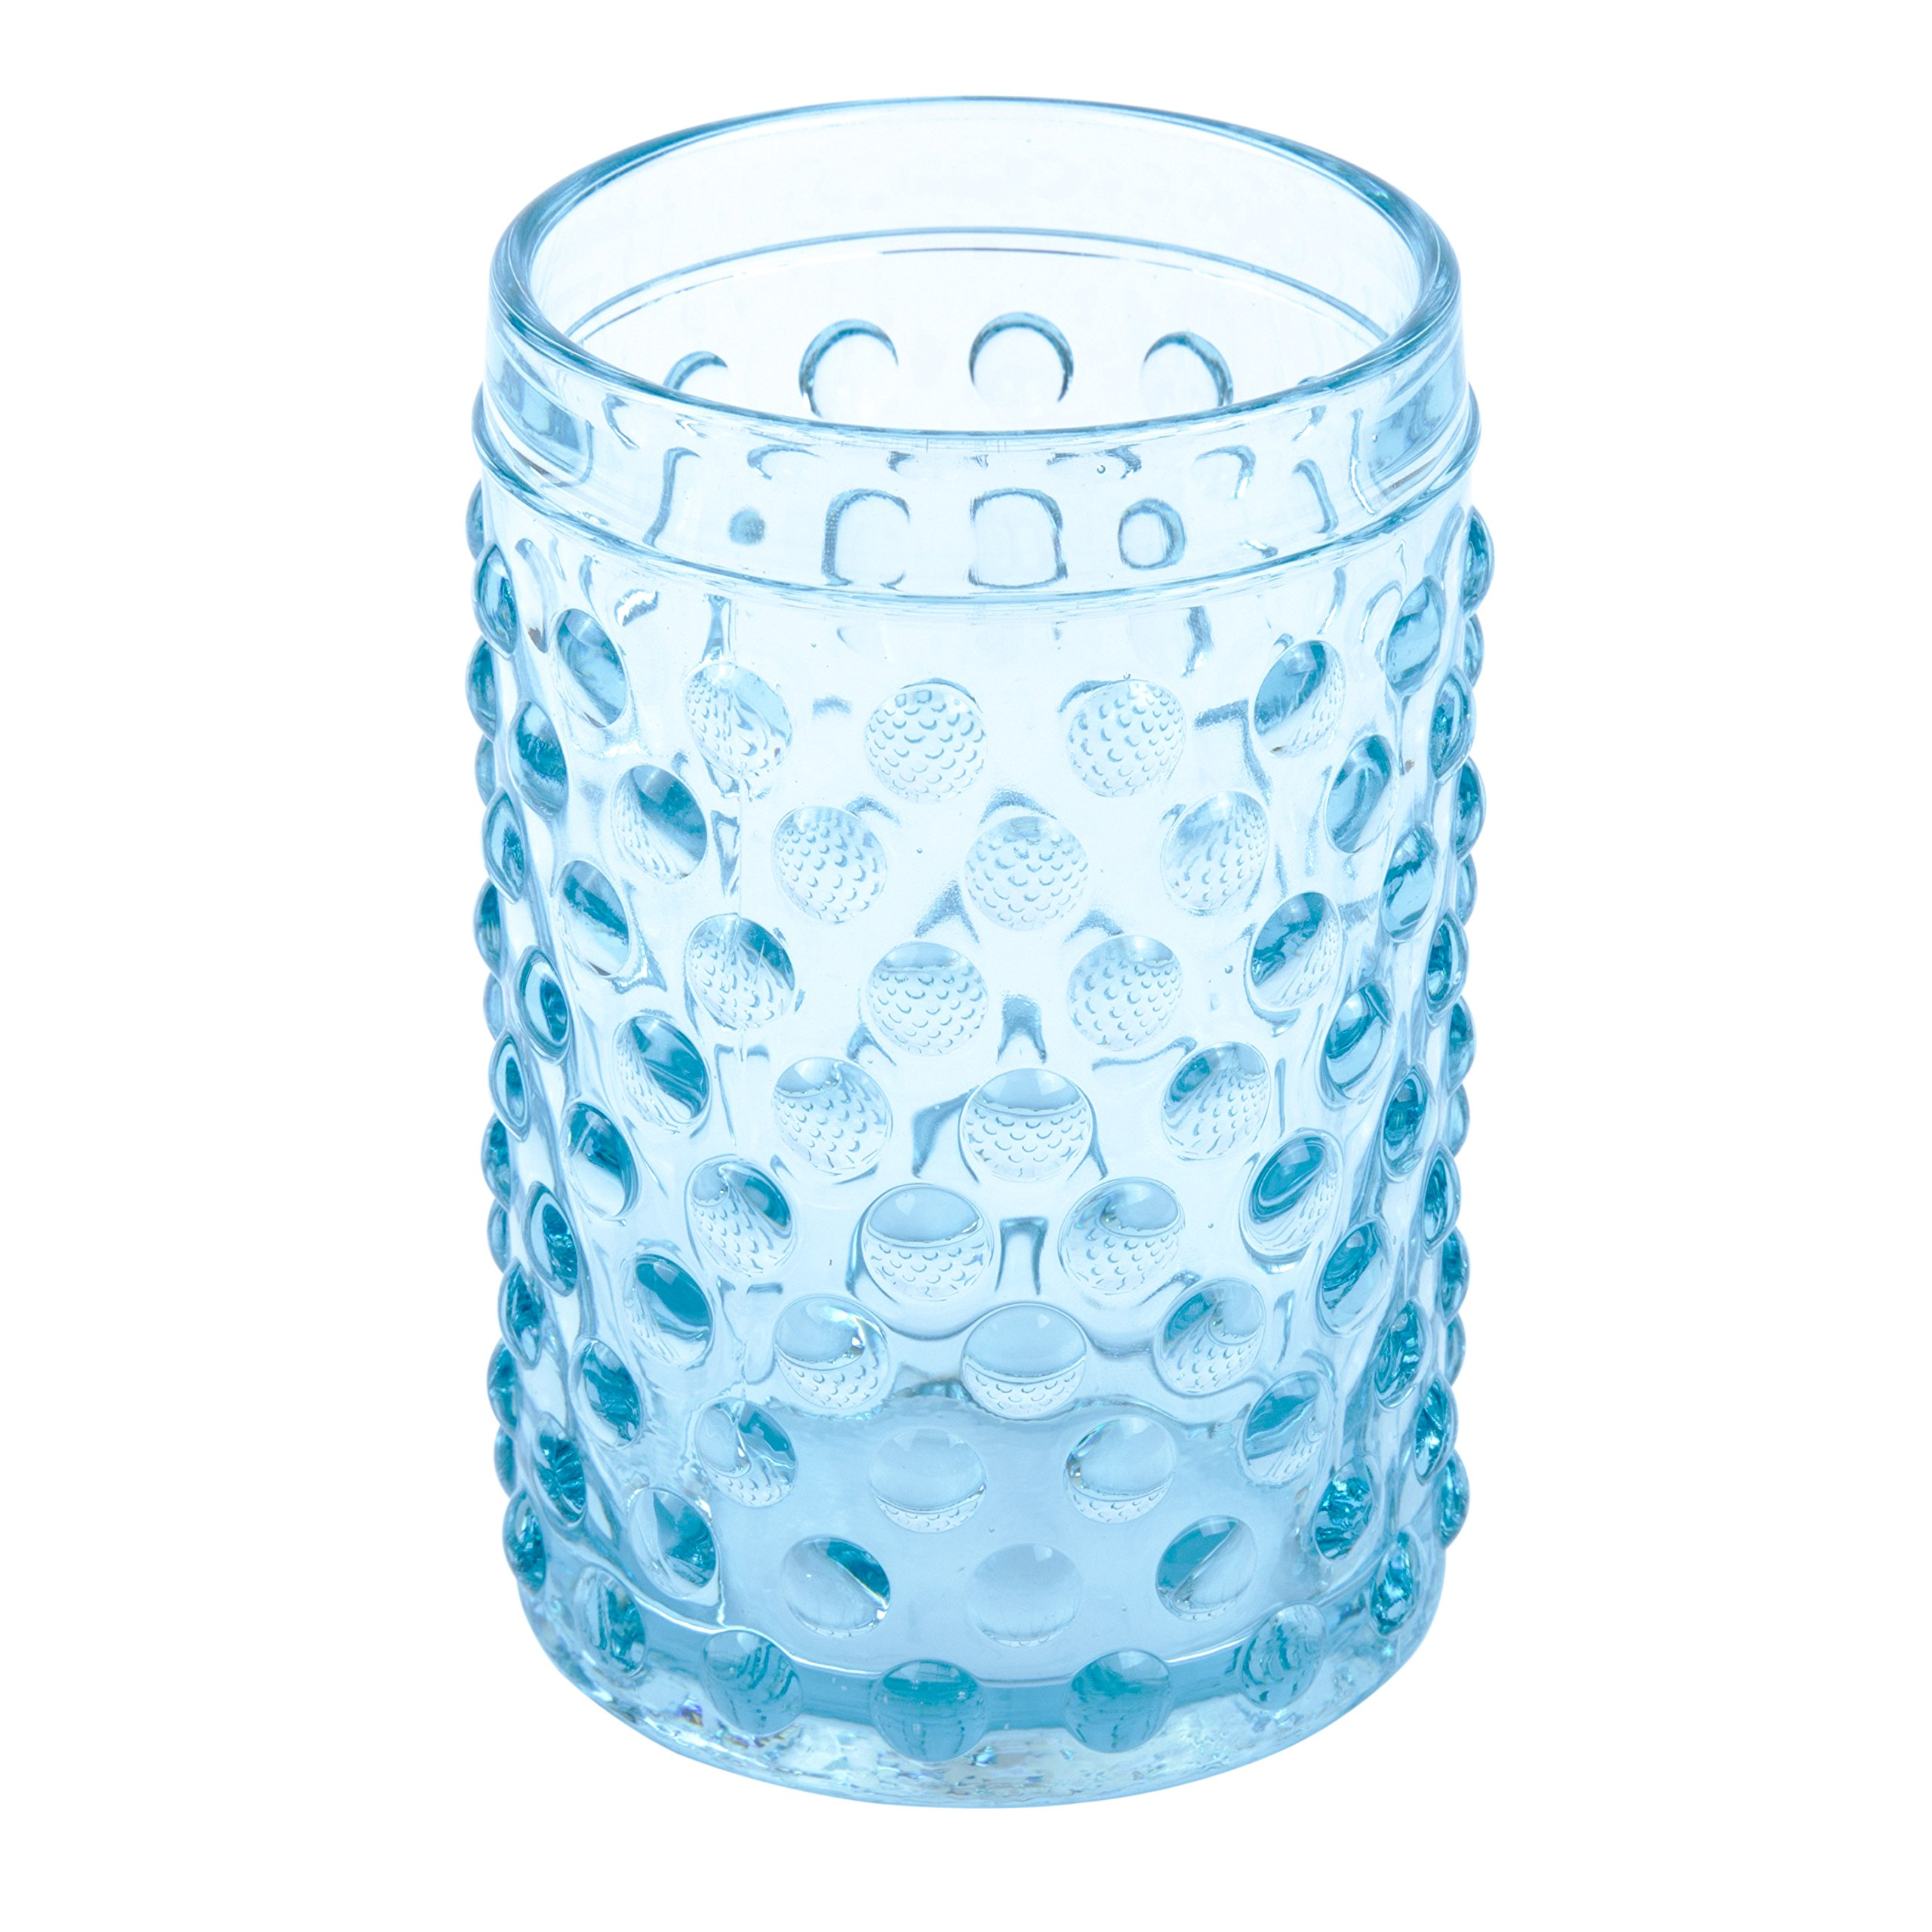 Creative Home Transparent Blue Dot Glass Tumbler, Toothbrush Holder by Creative Home